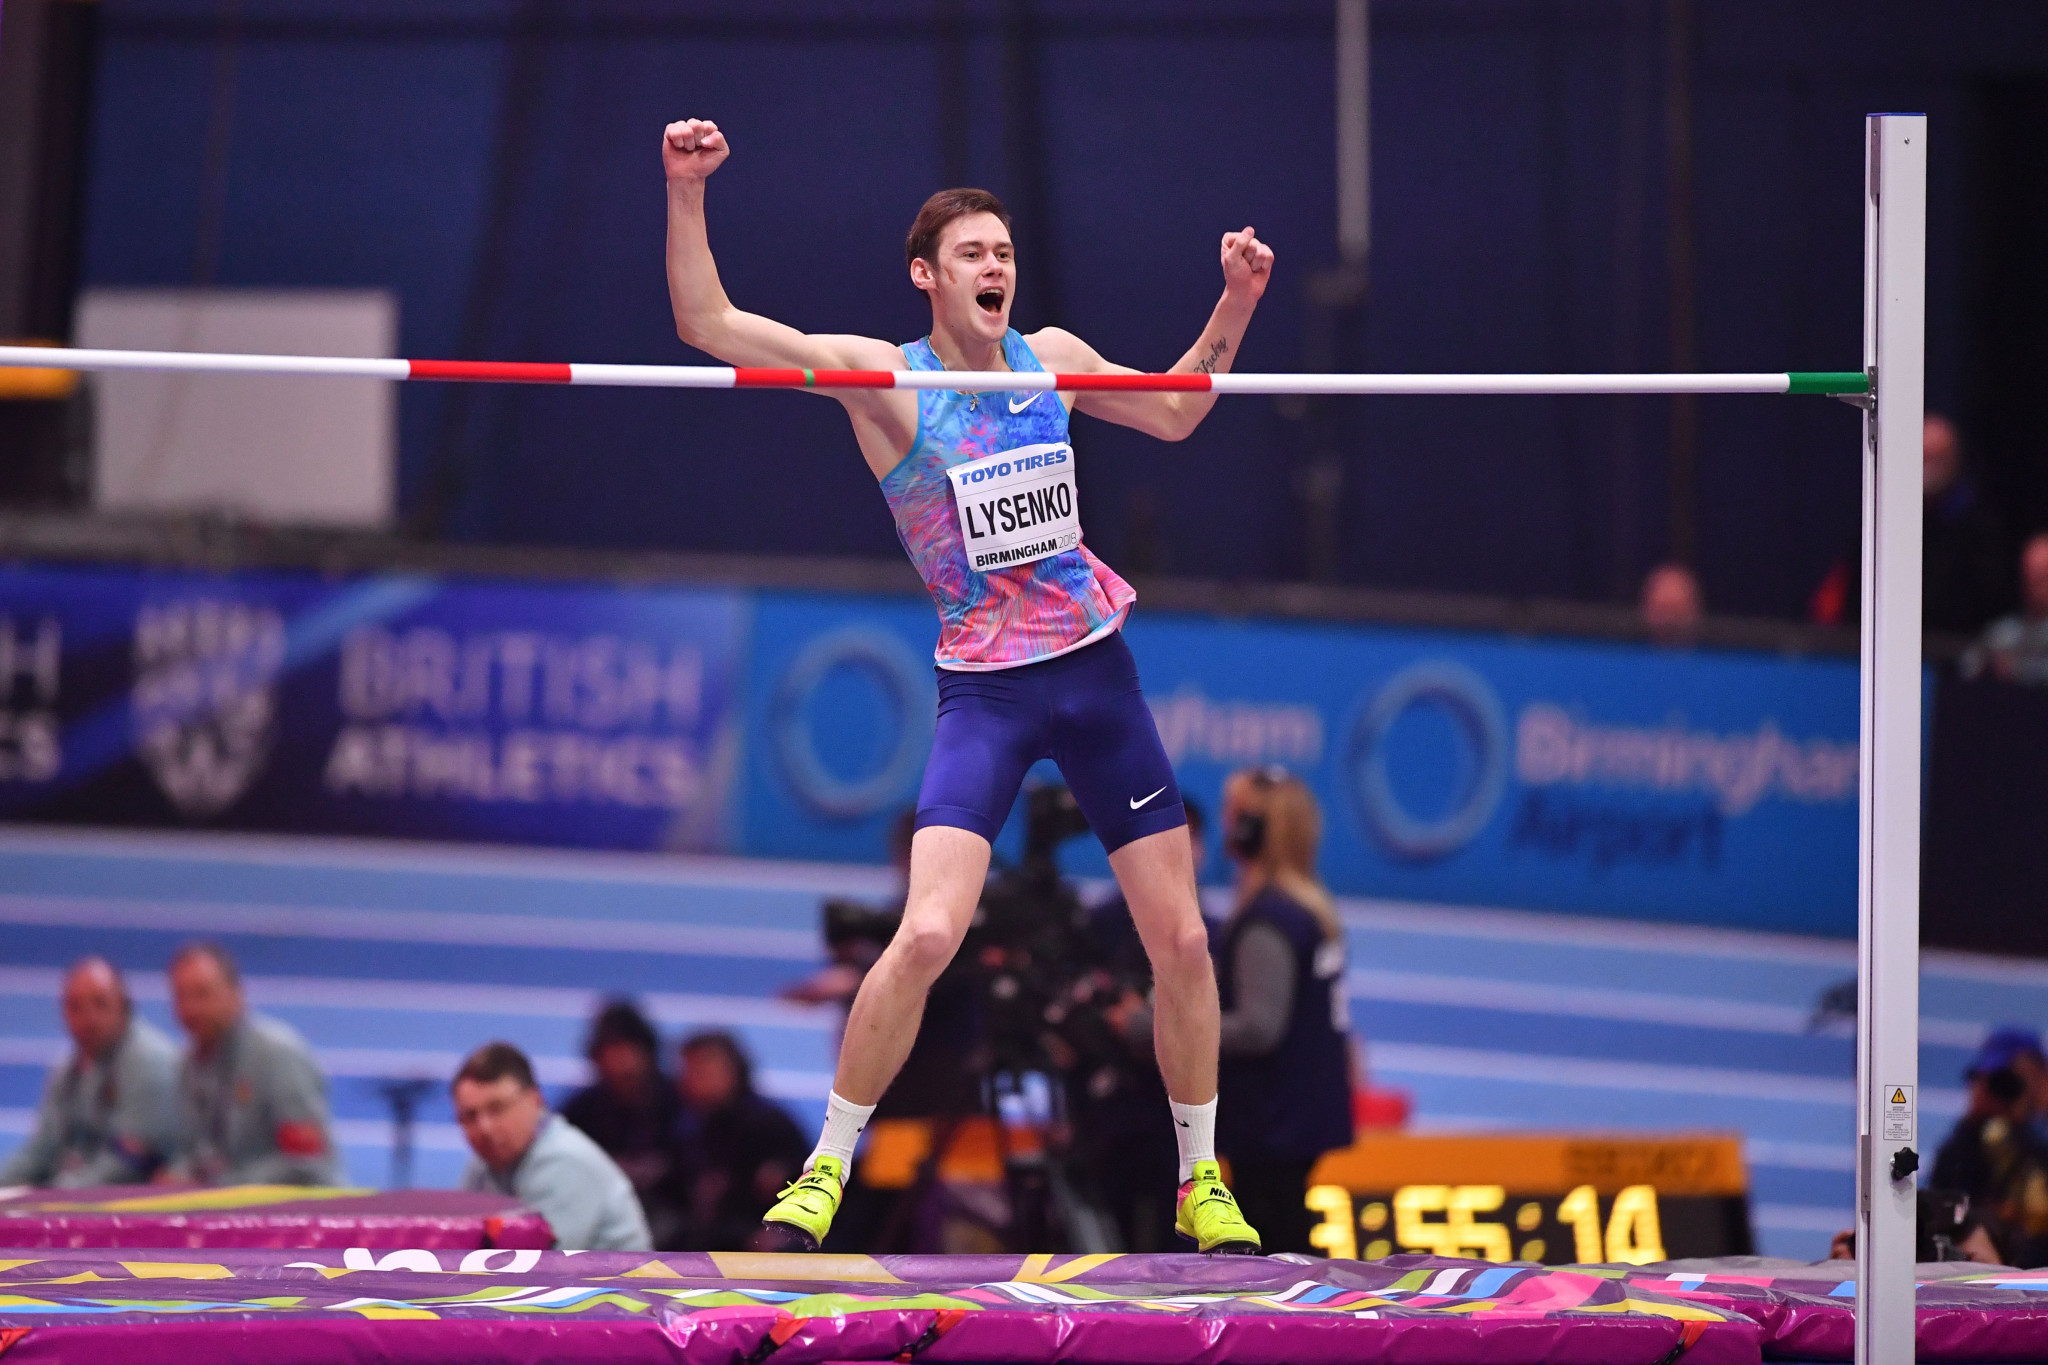 World indoor high jump champion Lysenko suspended over whereabouts violation in further blow to Russian athletics